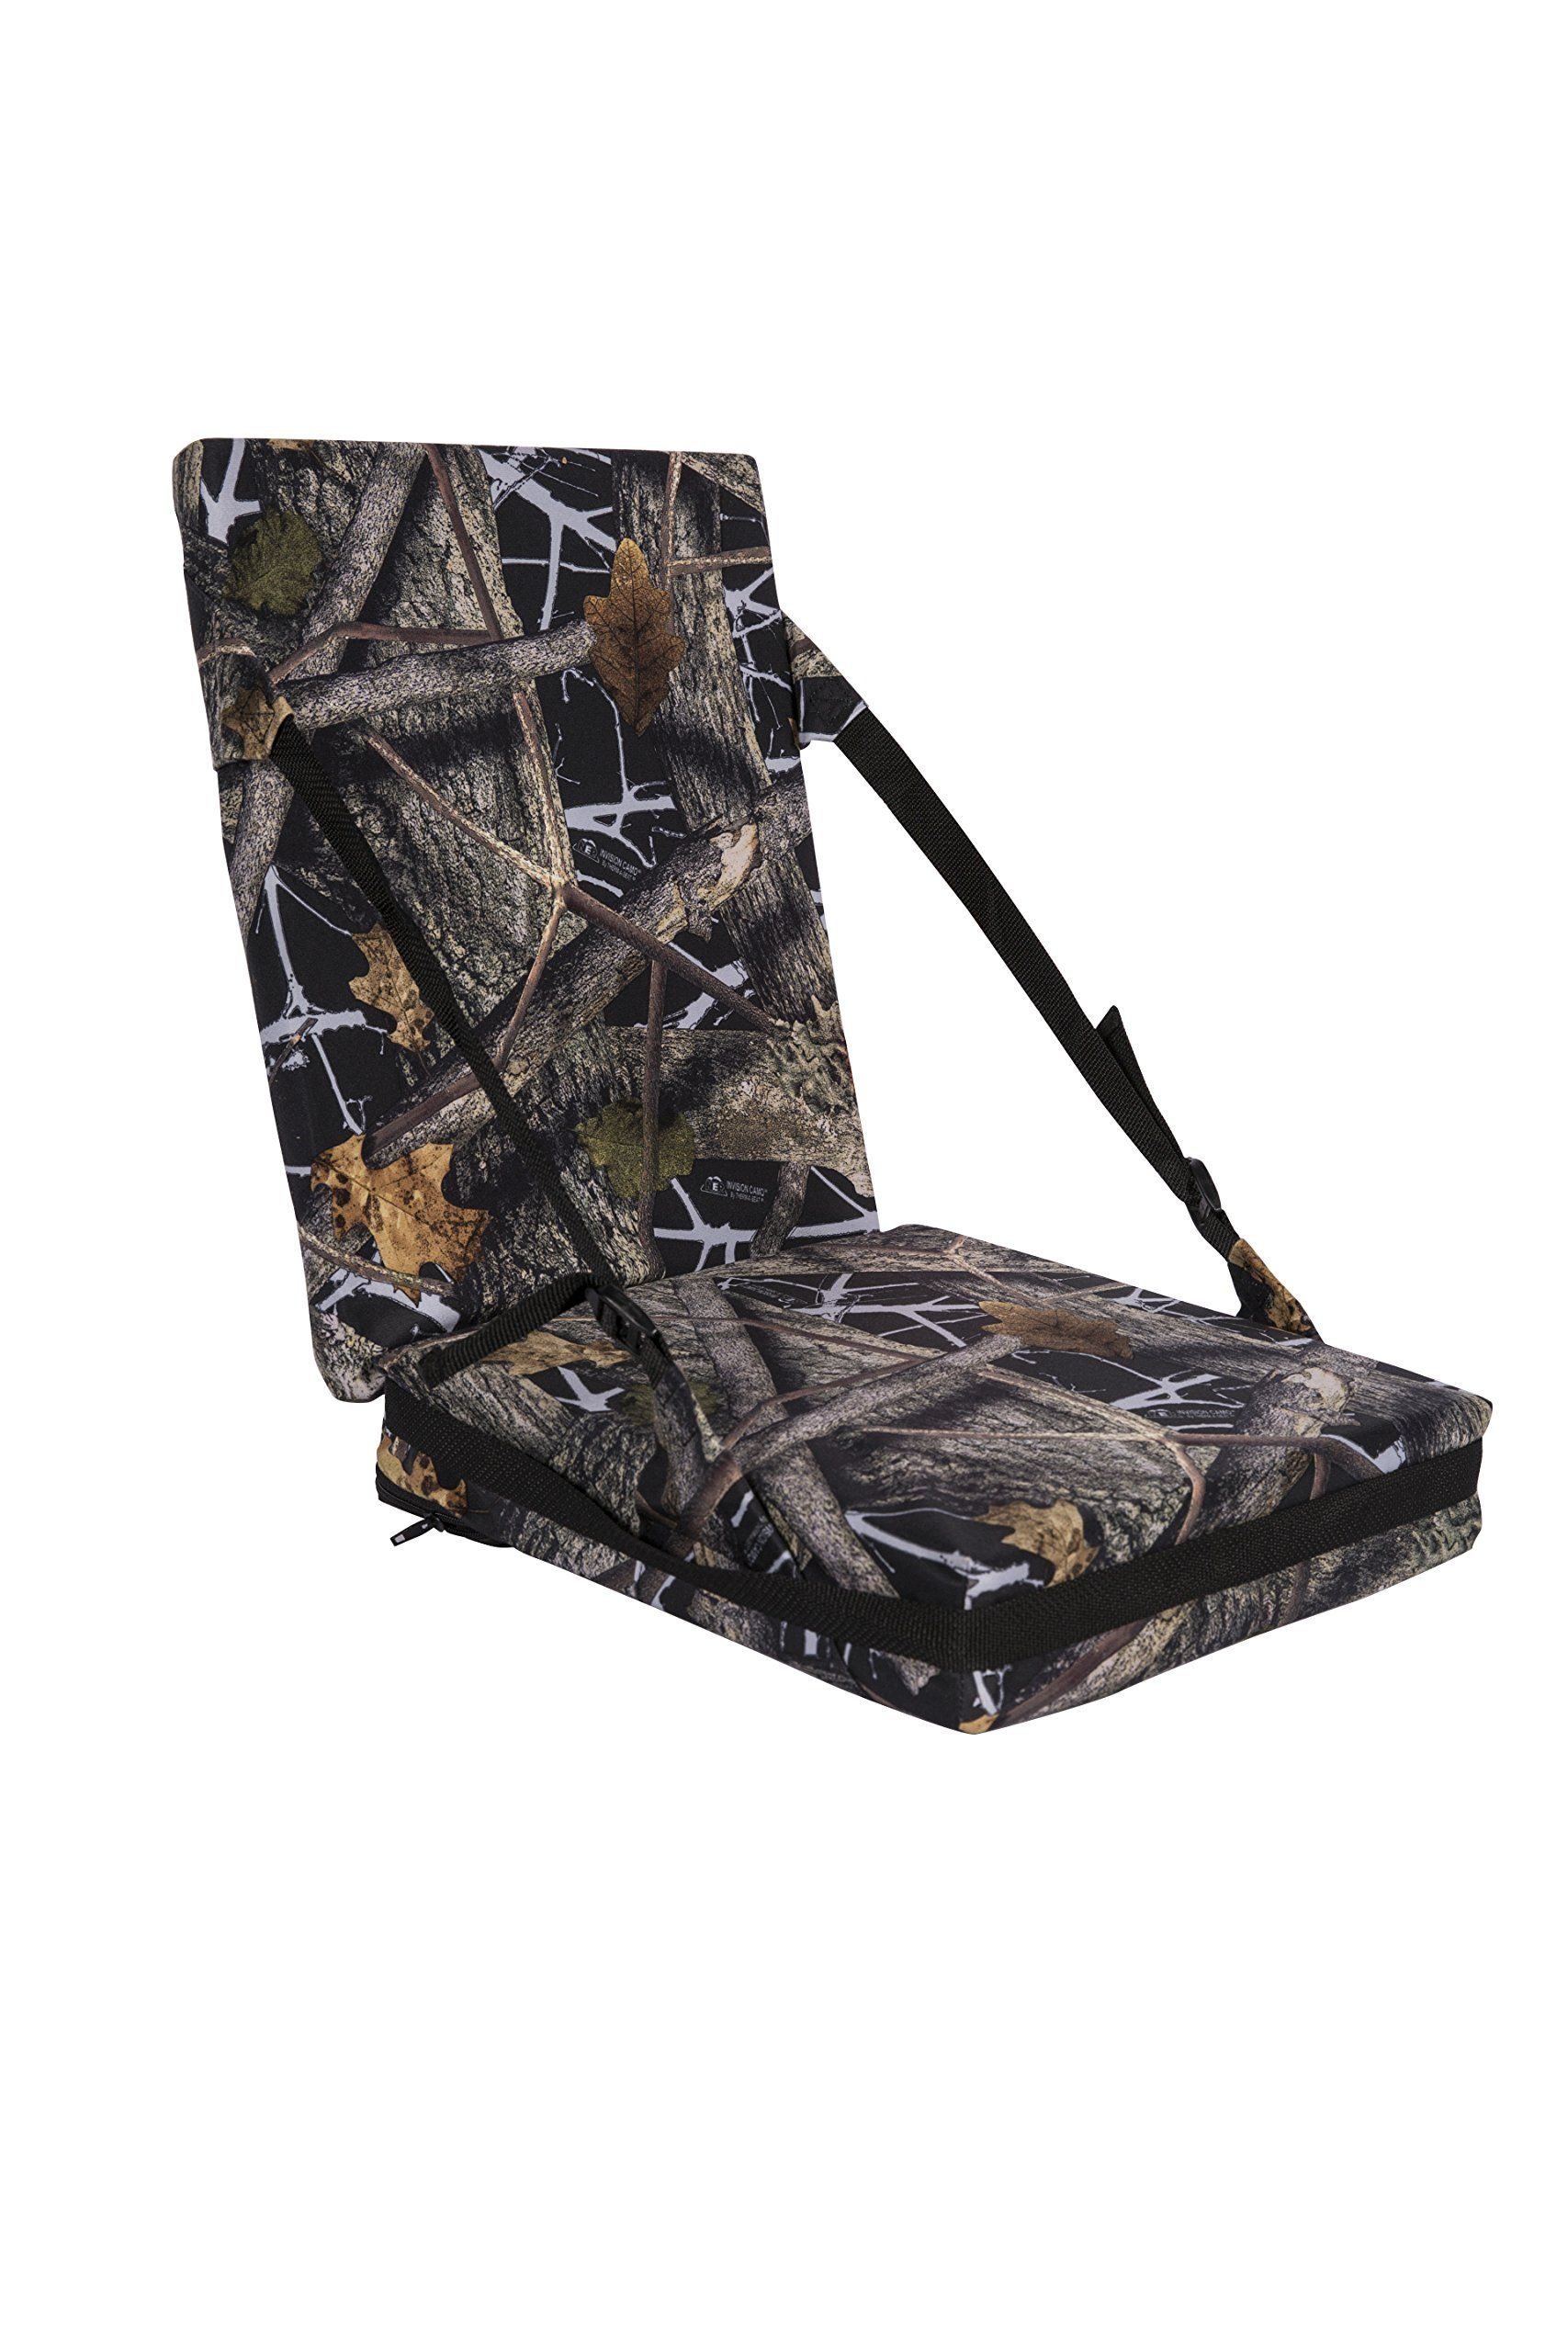 a7c29630cc812 Northeast Products Therm-A-SEAT Self-Supporting Hunting Seat Cushion https:/